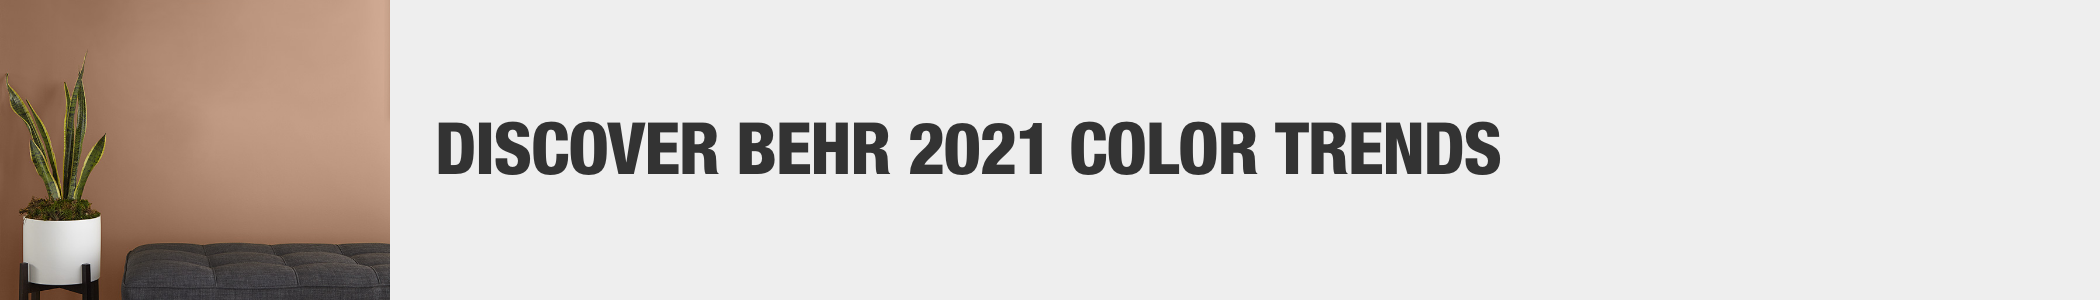 Discover Behr 2021 Color Trends